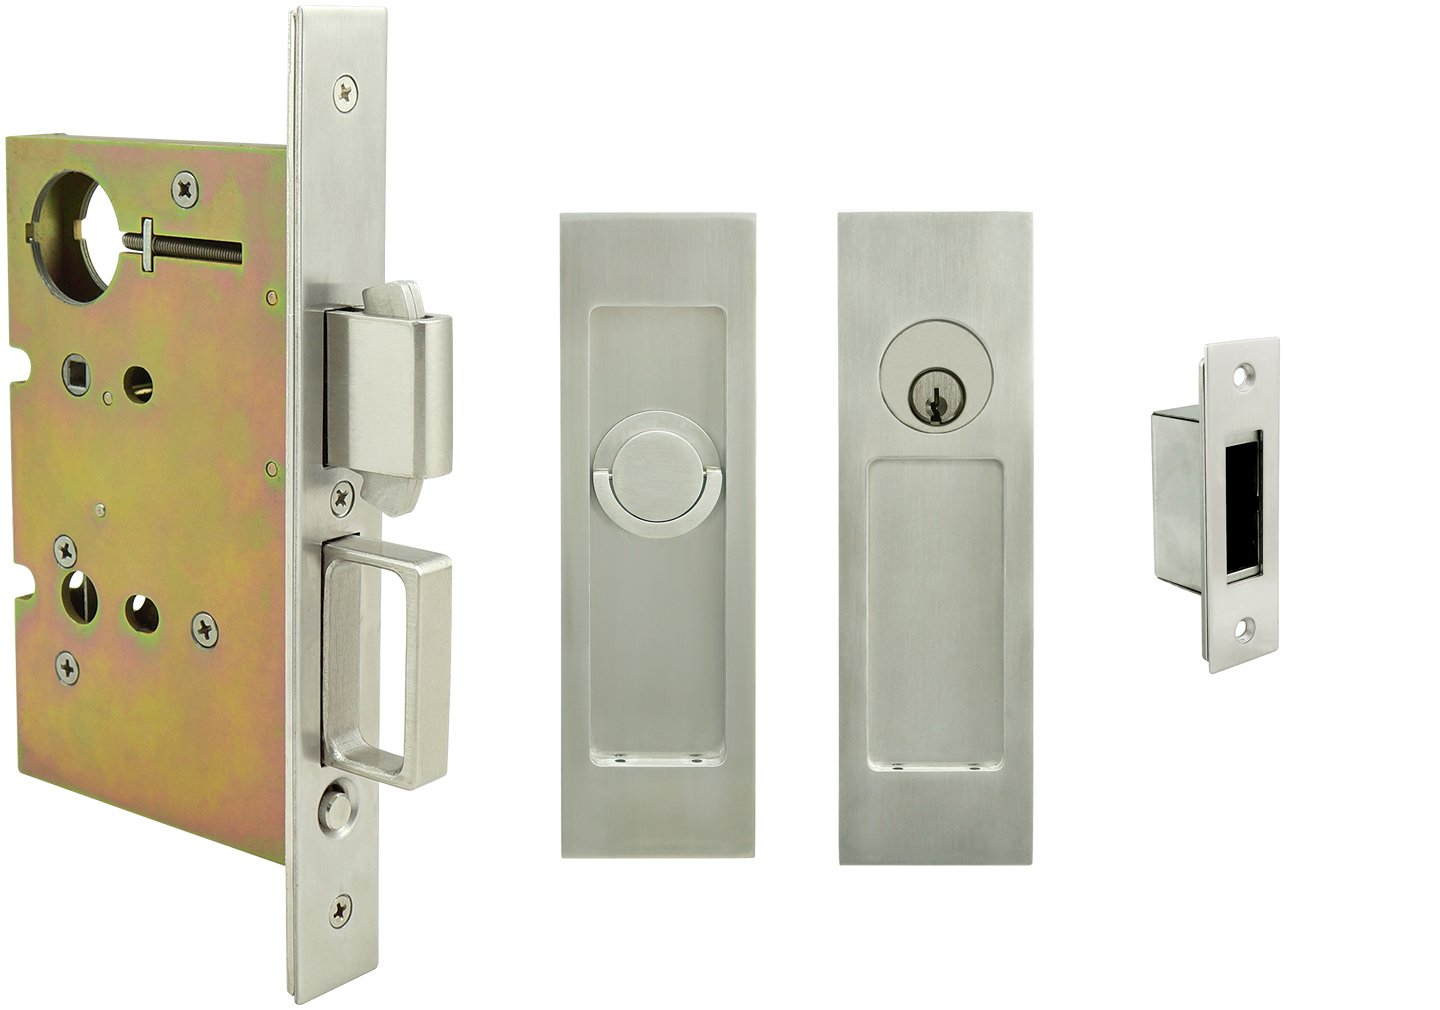 INOX FH27PD8450-234-TT09-32D Mortise Pocket Door Lock Entry Function with 2-3/4-Inch Backset, TT09 Thumb Turn and Cylinder, Satin Stainless Steel